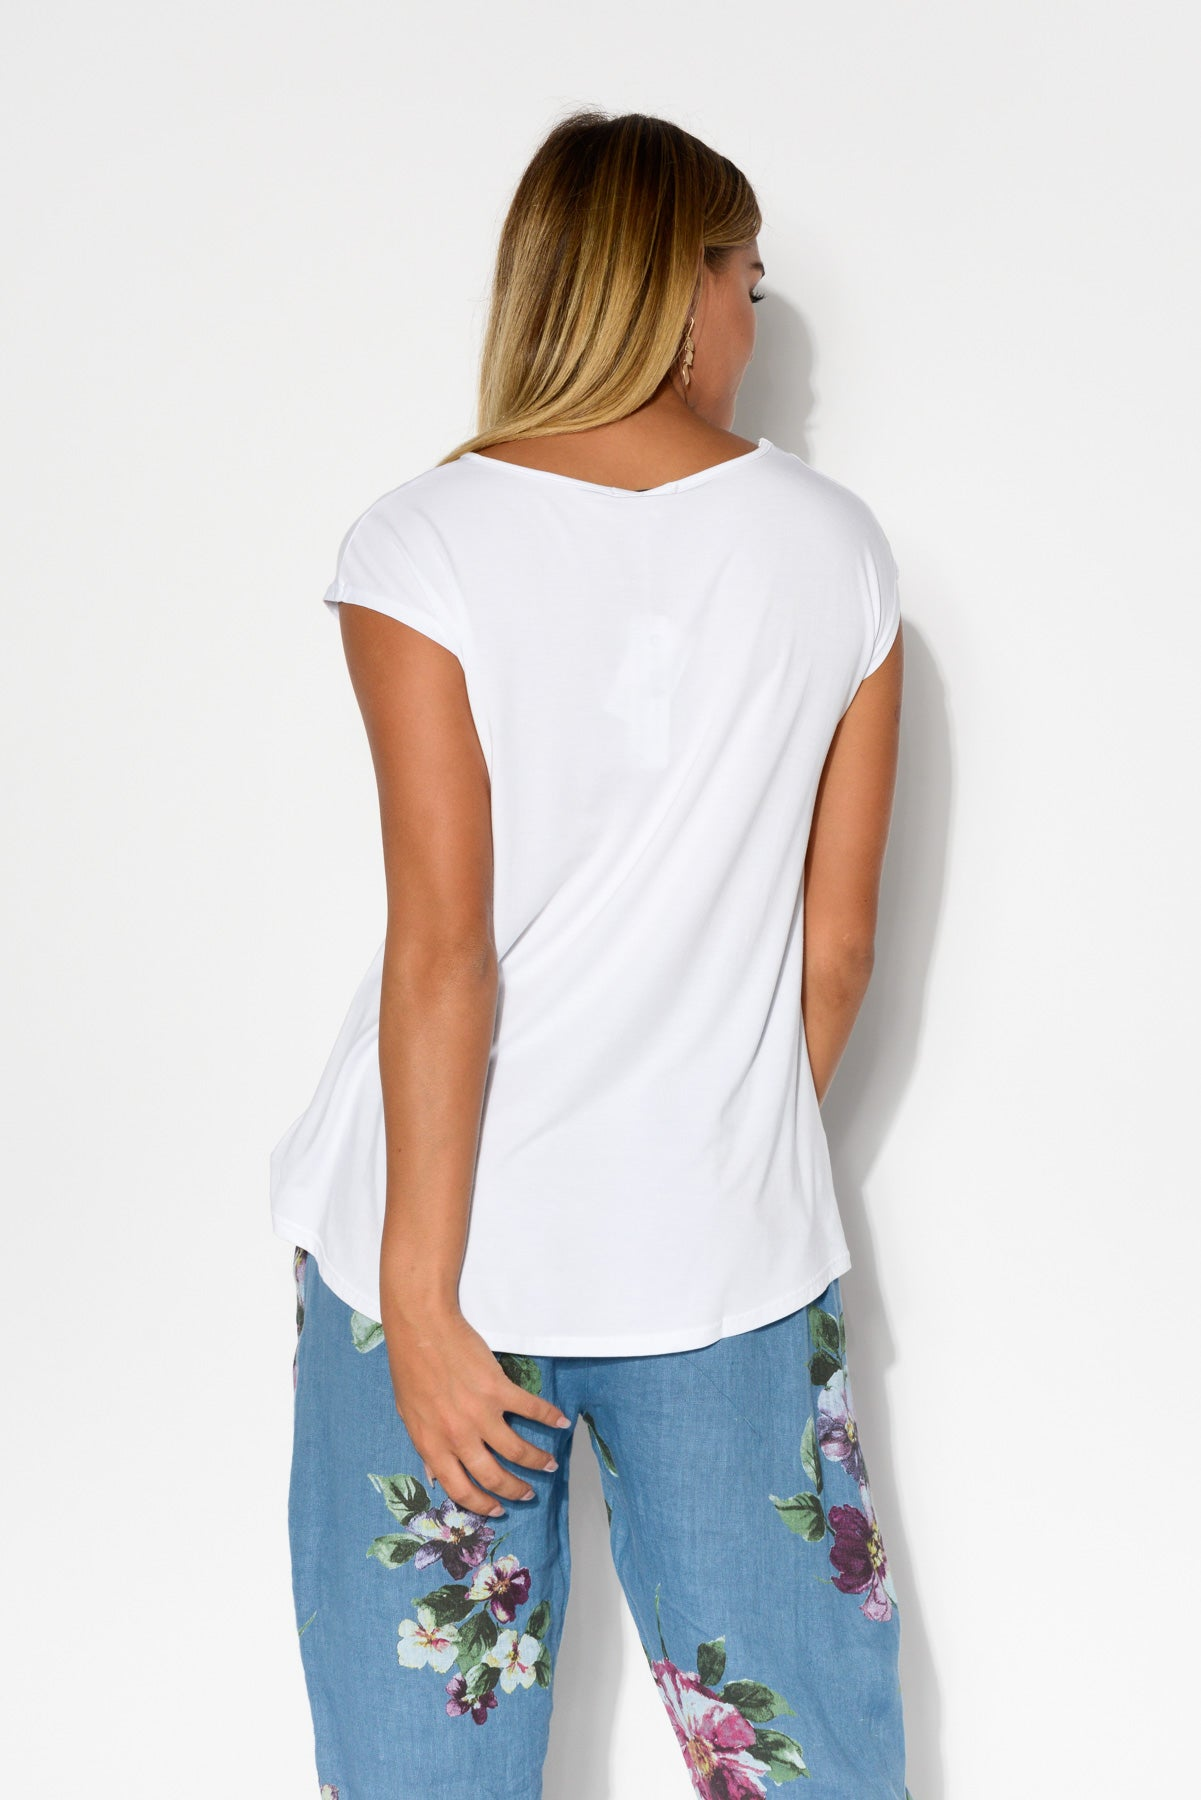 White Modal Cap Sleeve Tee - Blue Bungalow